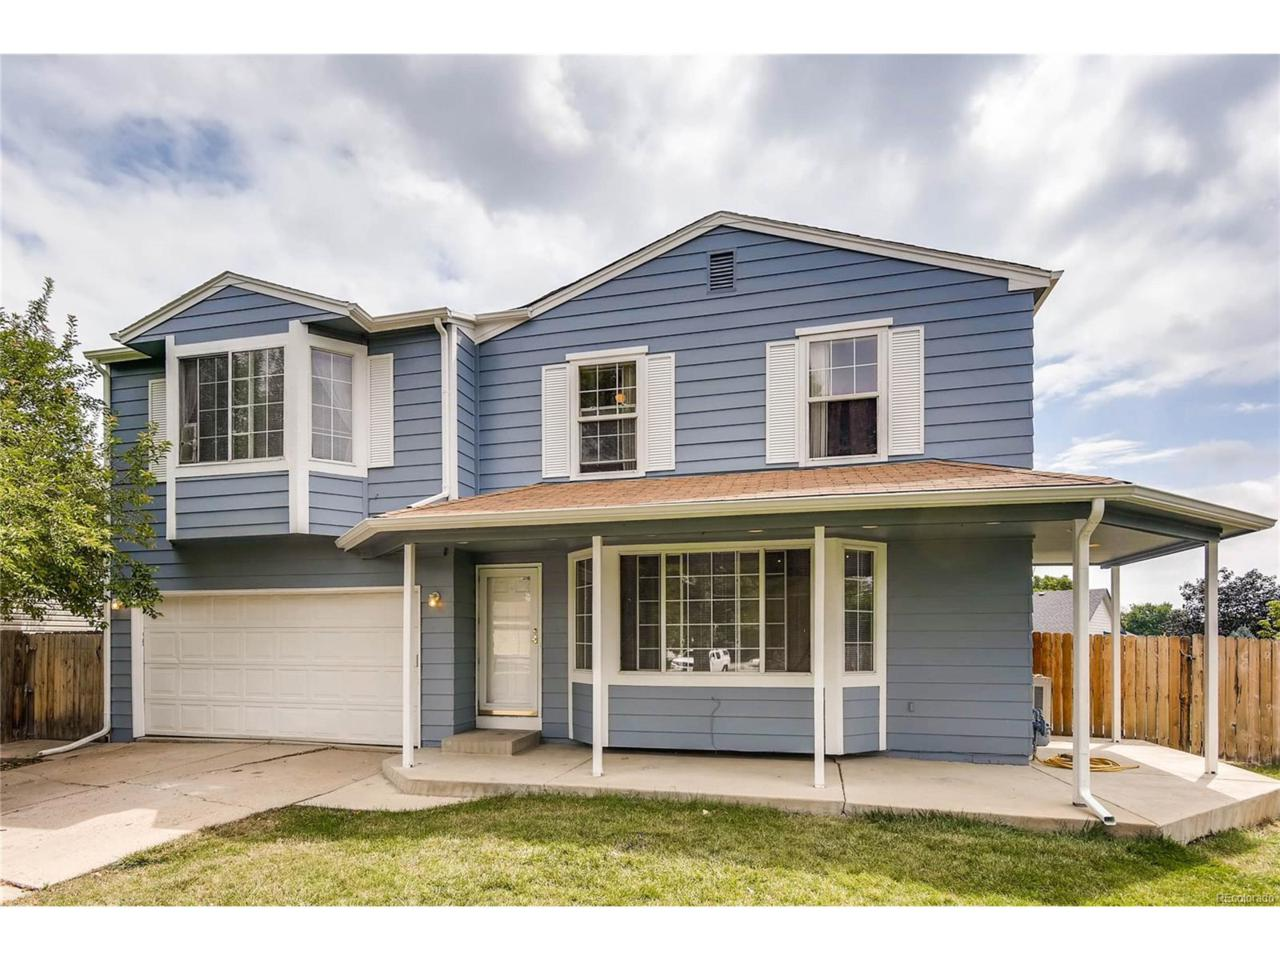 10728 Lewis Circle, Westminster, CO 80021 (MLS #7608787) :: 8z Real Estate